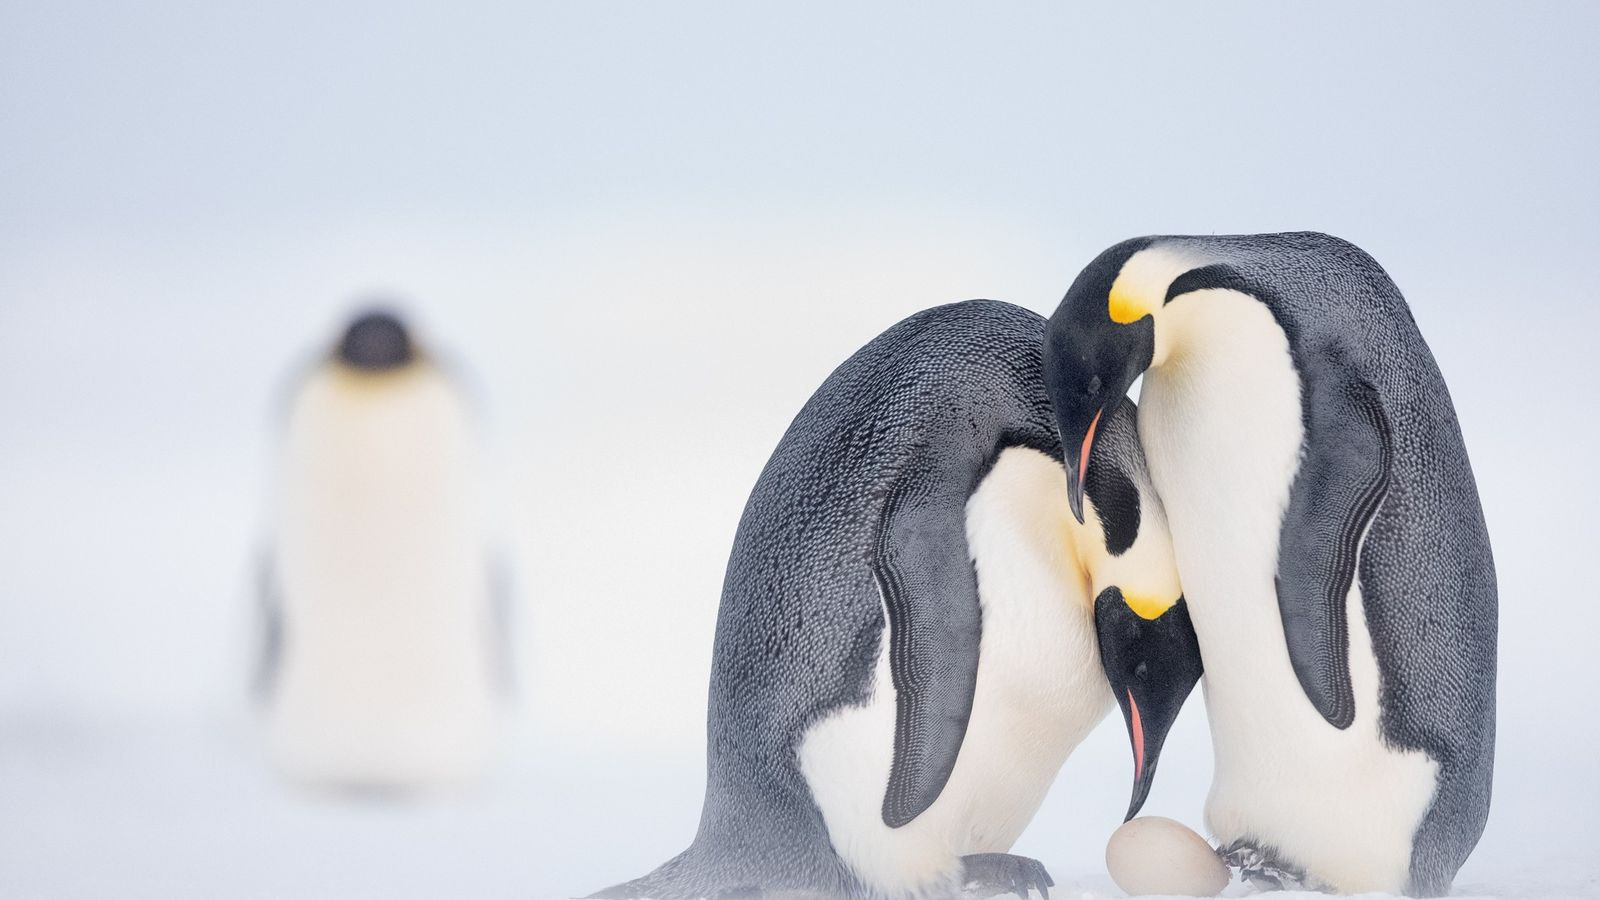 As ice melts, emperor penguins march toward extinction